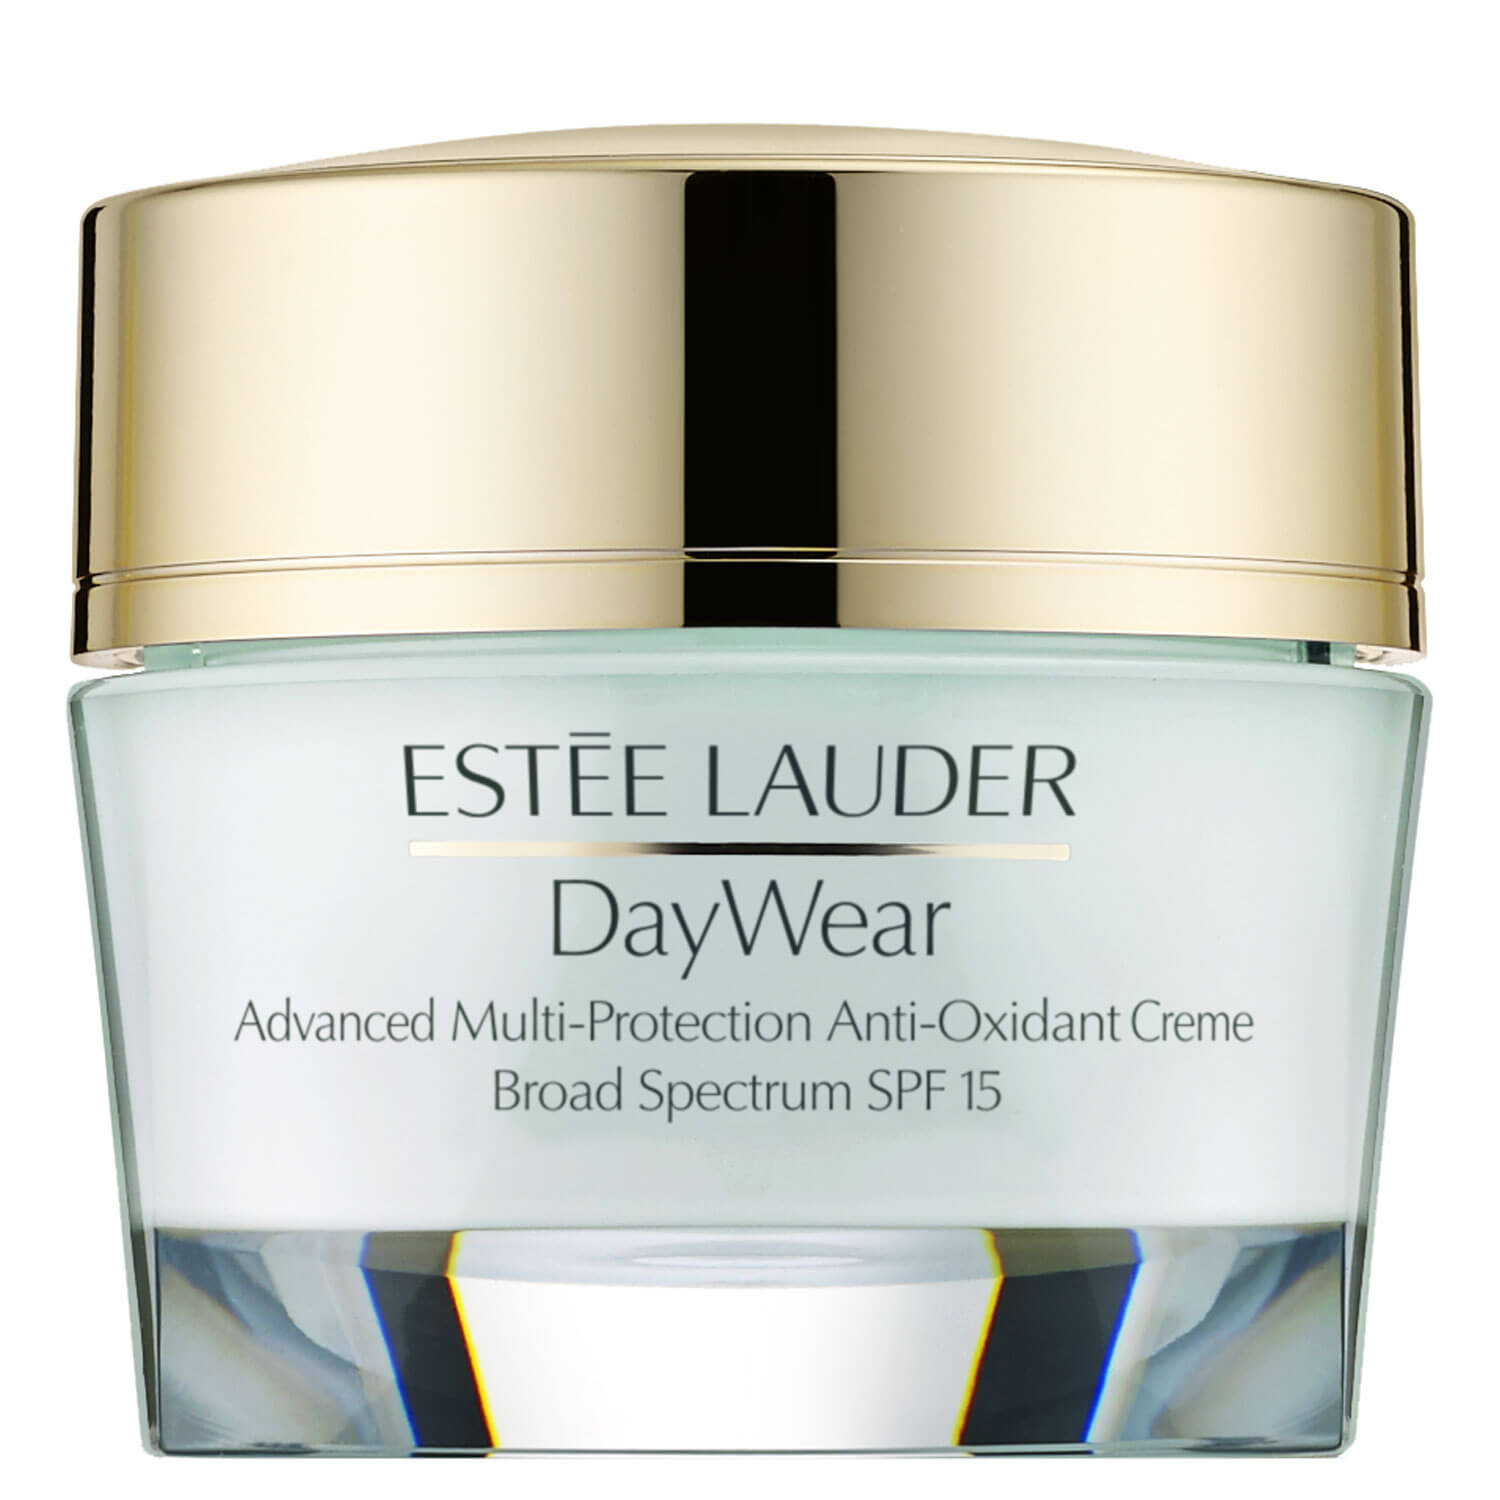 DayWear - Advanced Multi-Protection Anti-Oxidant Creme SPF15 Dry Skin